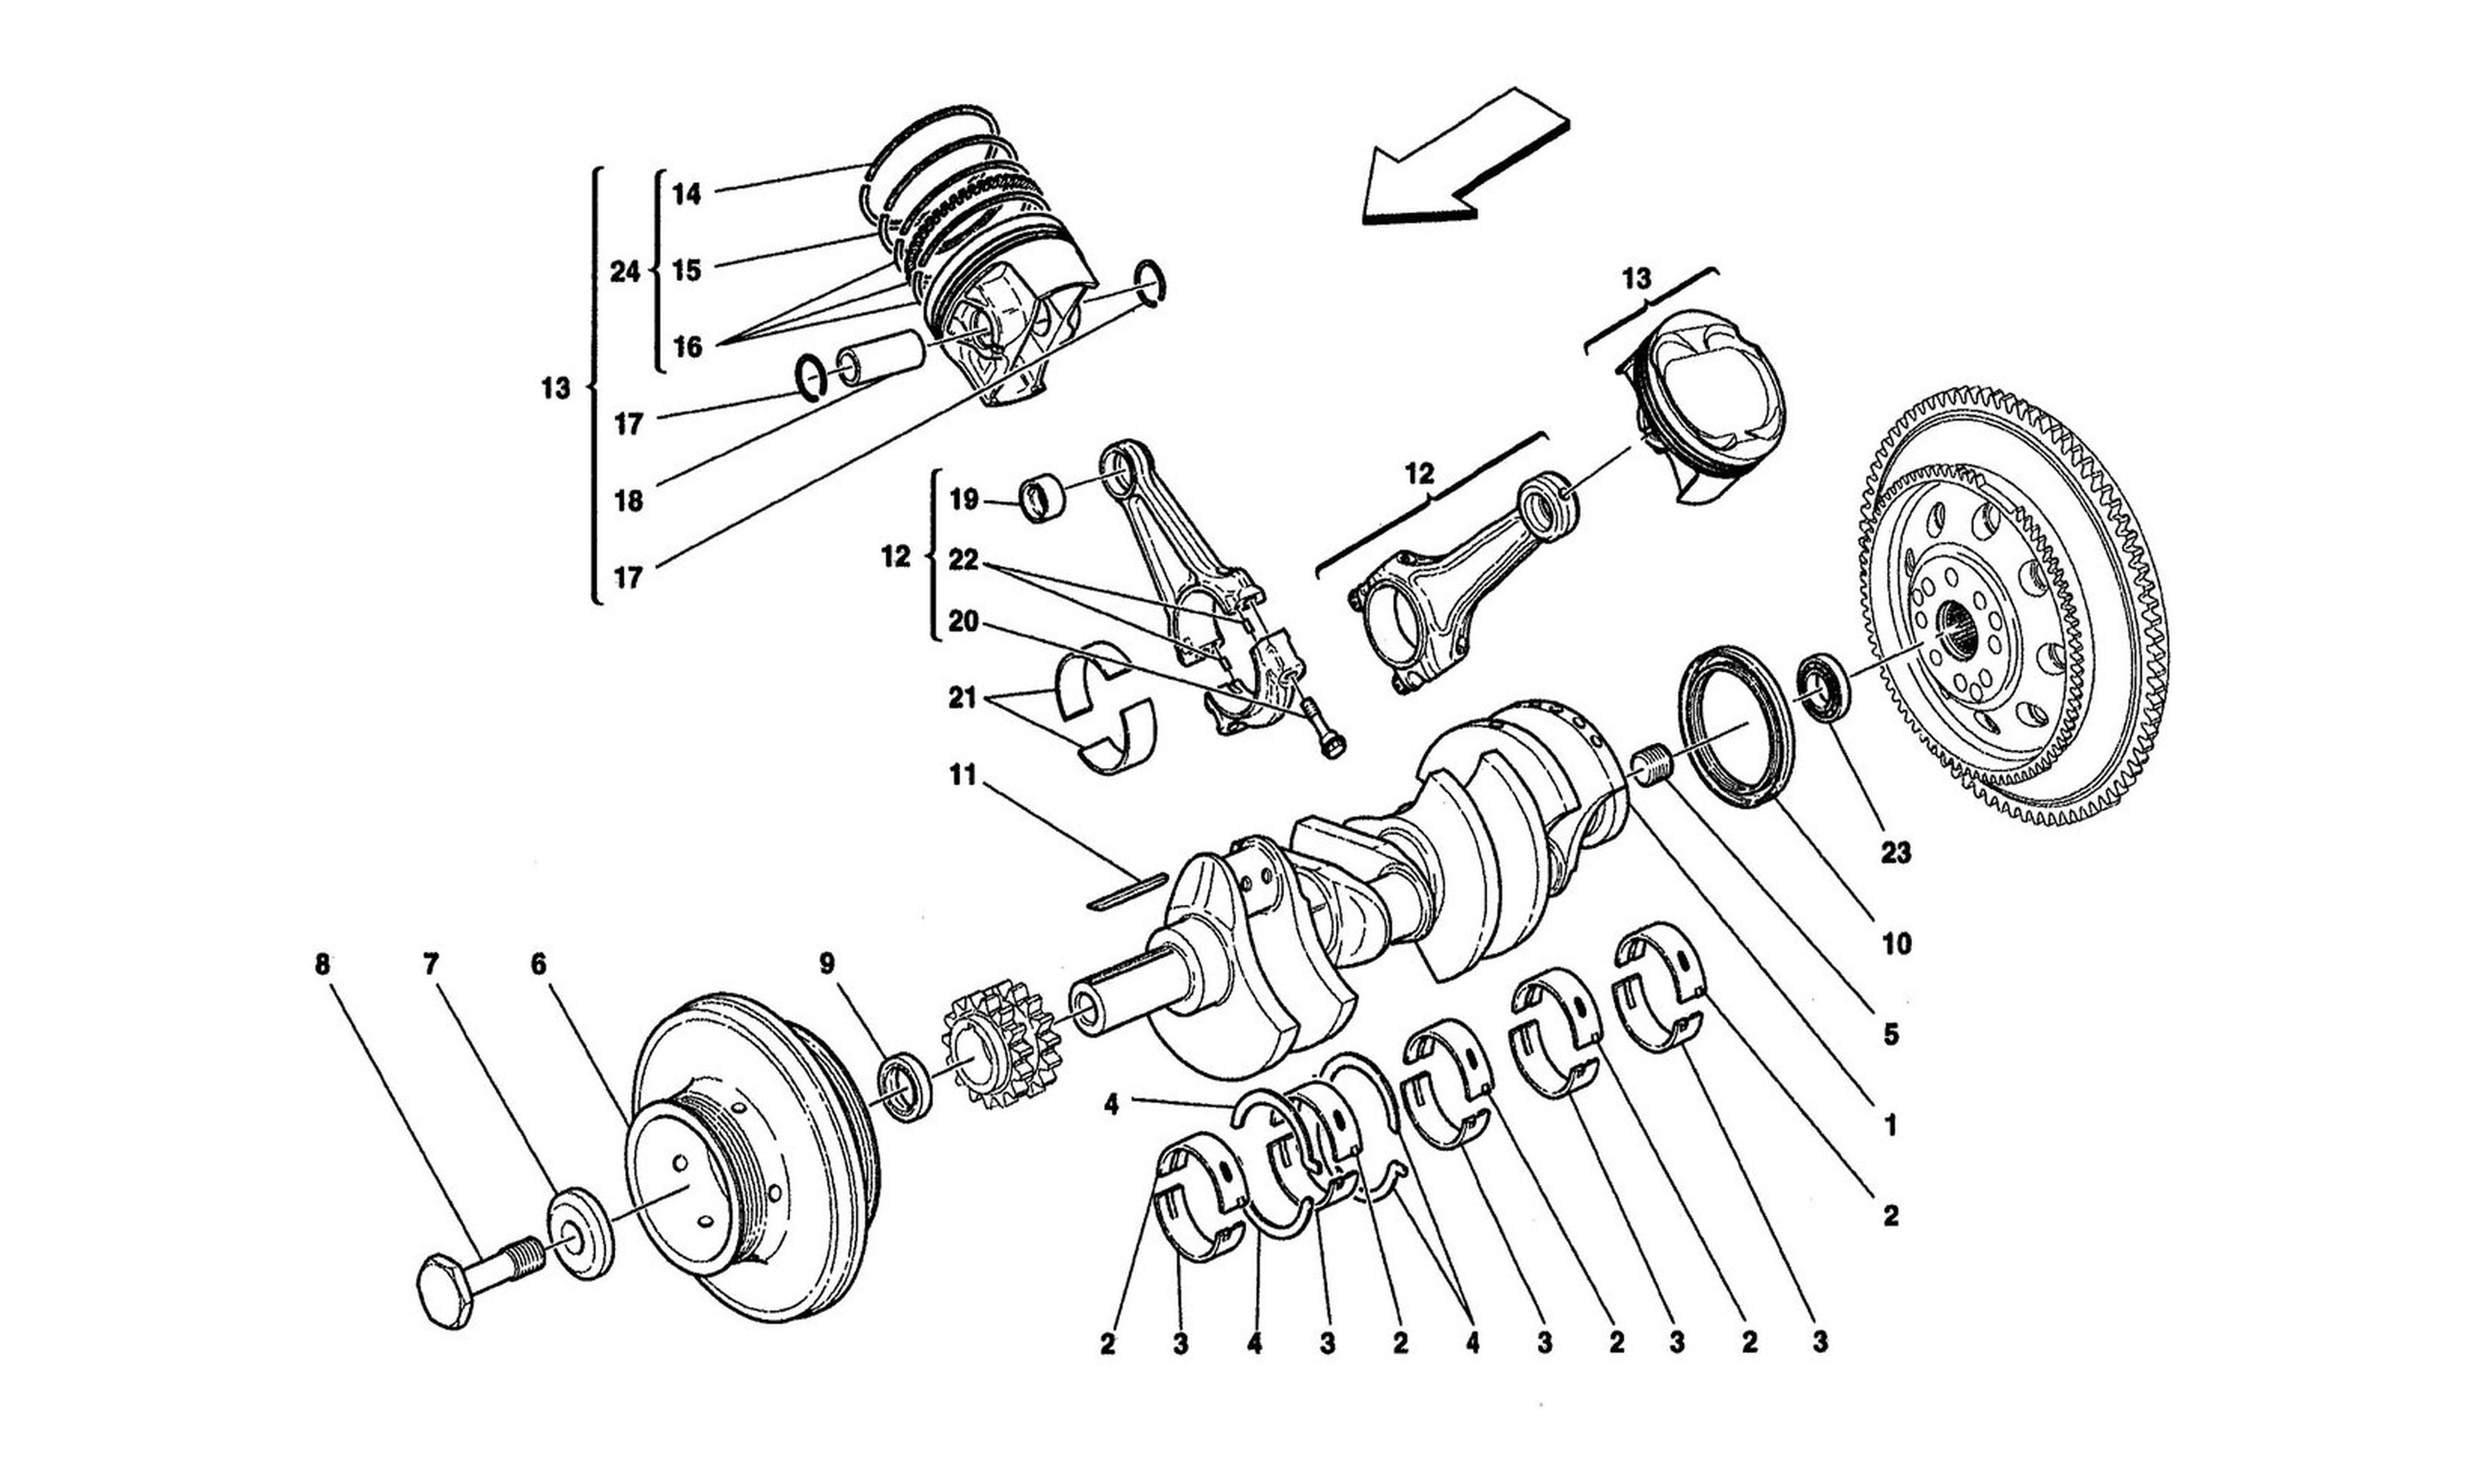 Table 2 - Crankshaft, Connecting Rods And Pistons